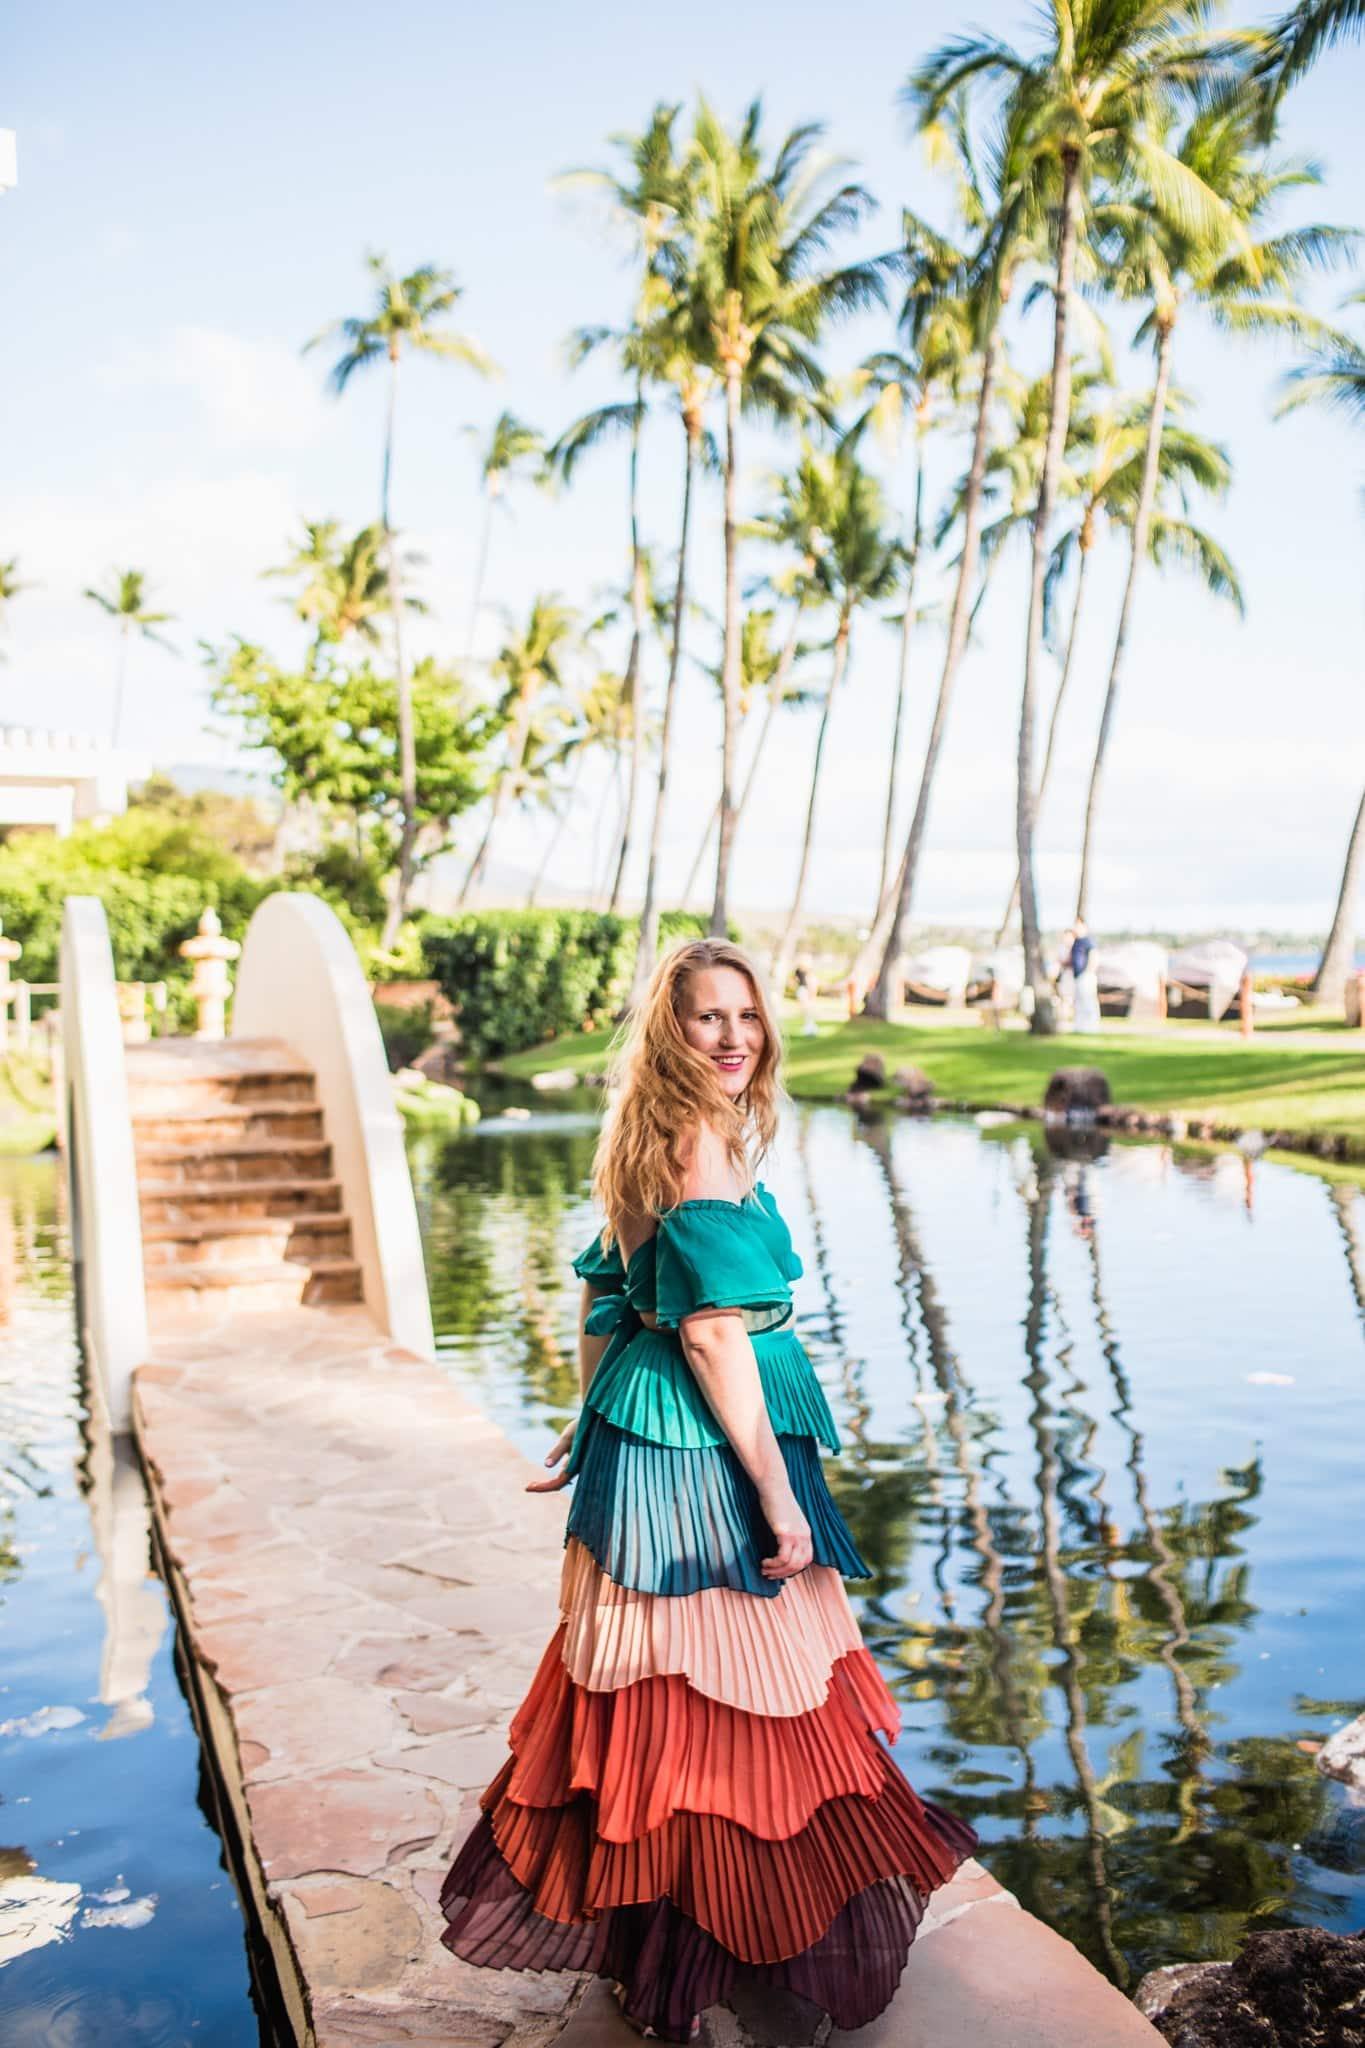 Instagram famous two piece outfit from Red Dress Boutique for dinner at the Hyatt Maui for Dinner